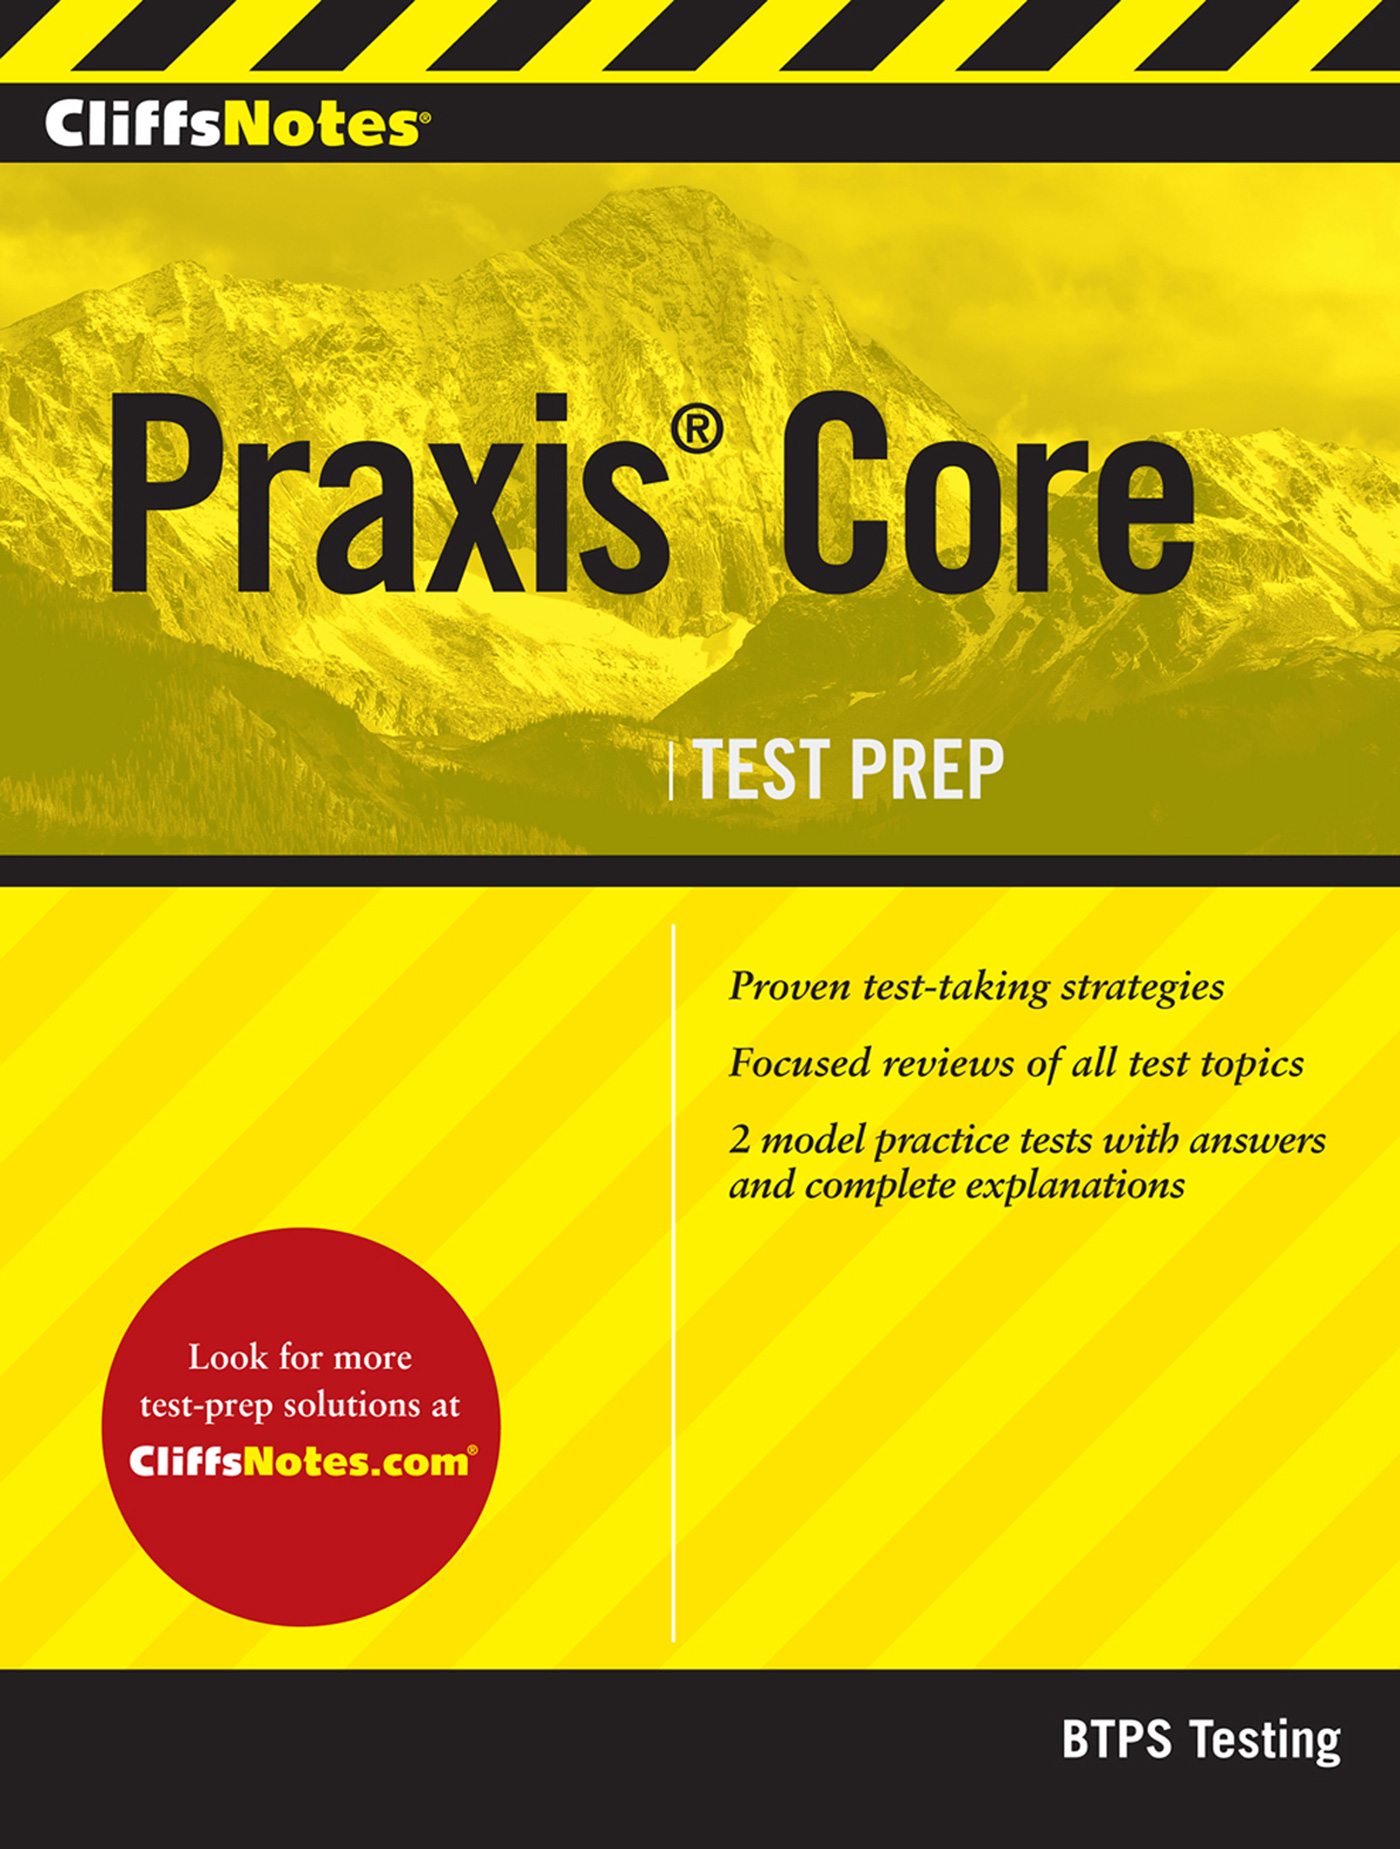 CliffsNotes Praxis Core-9780544480834